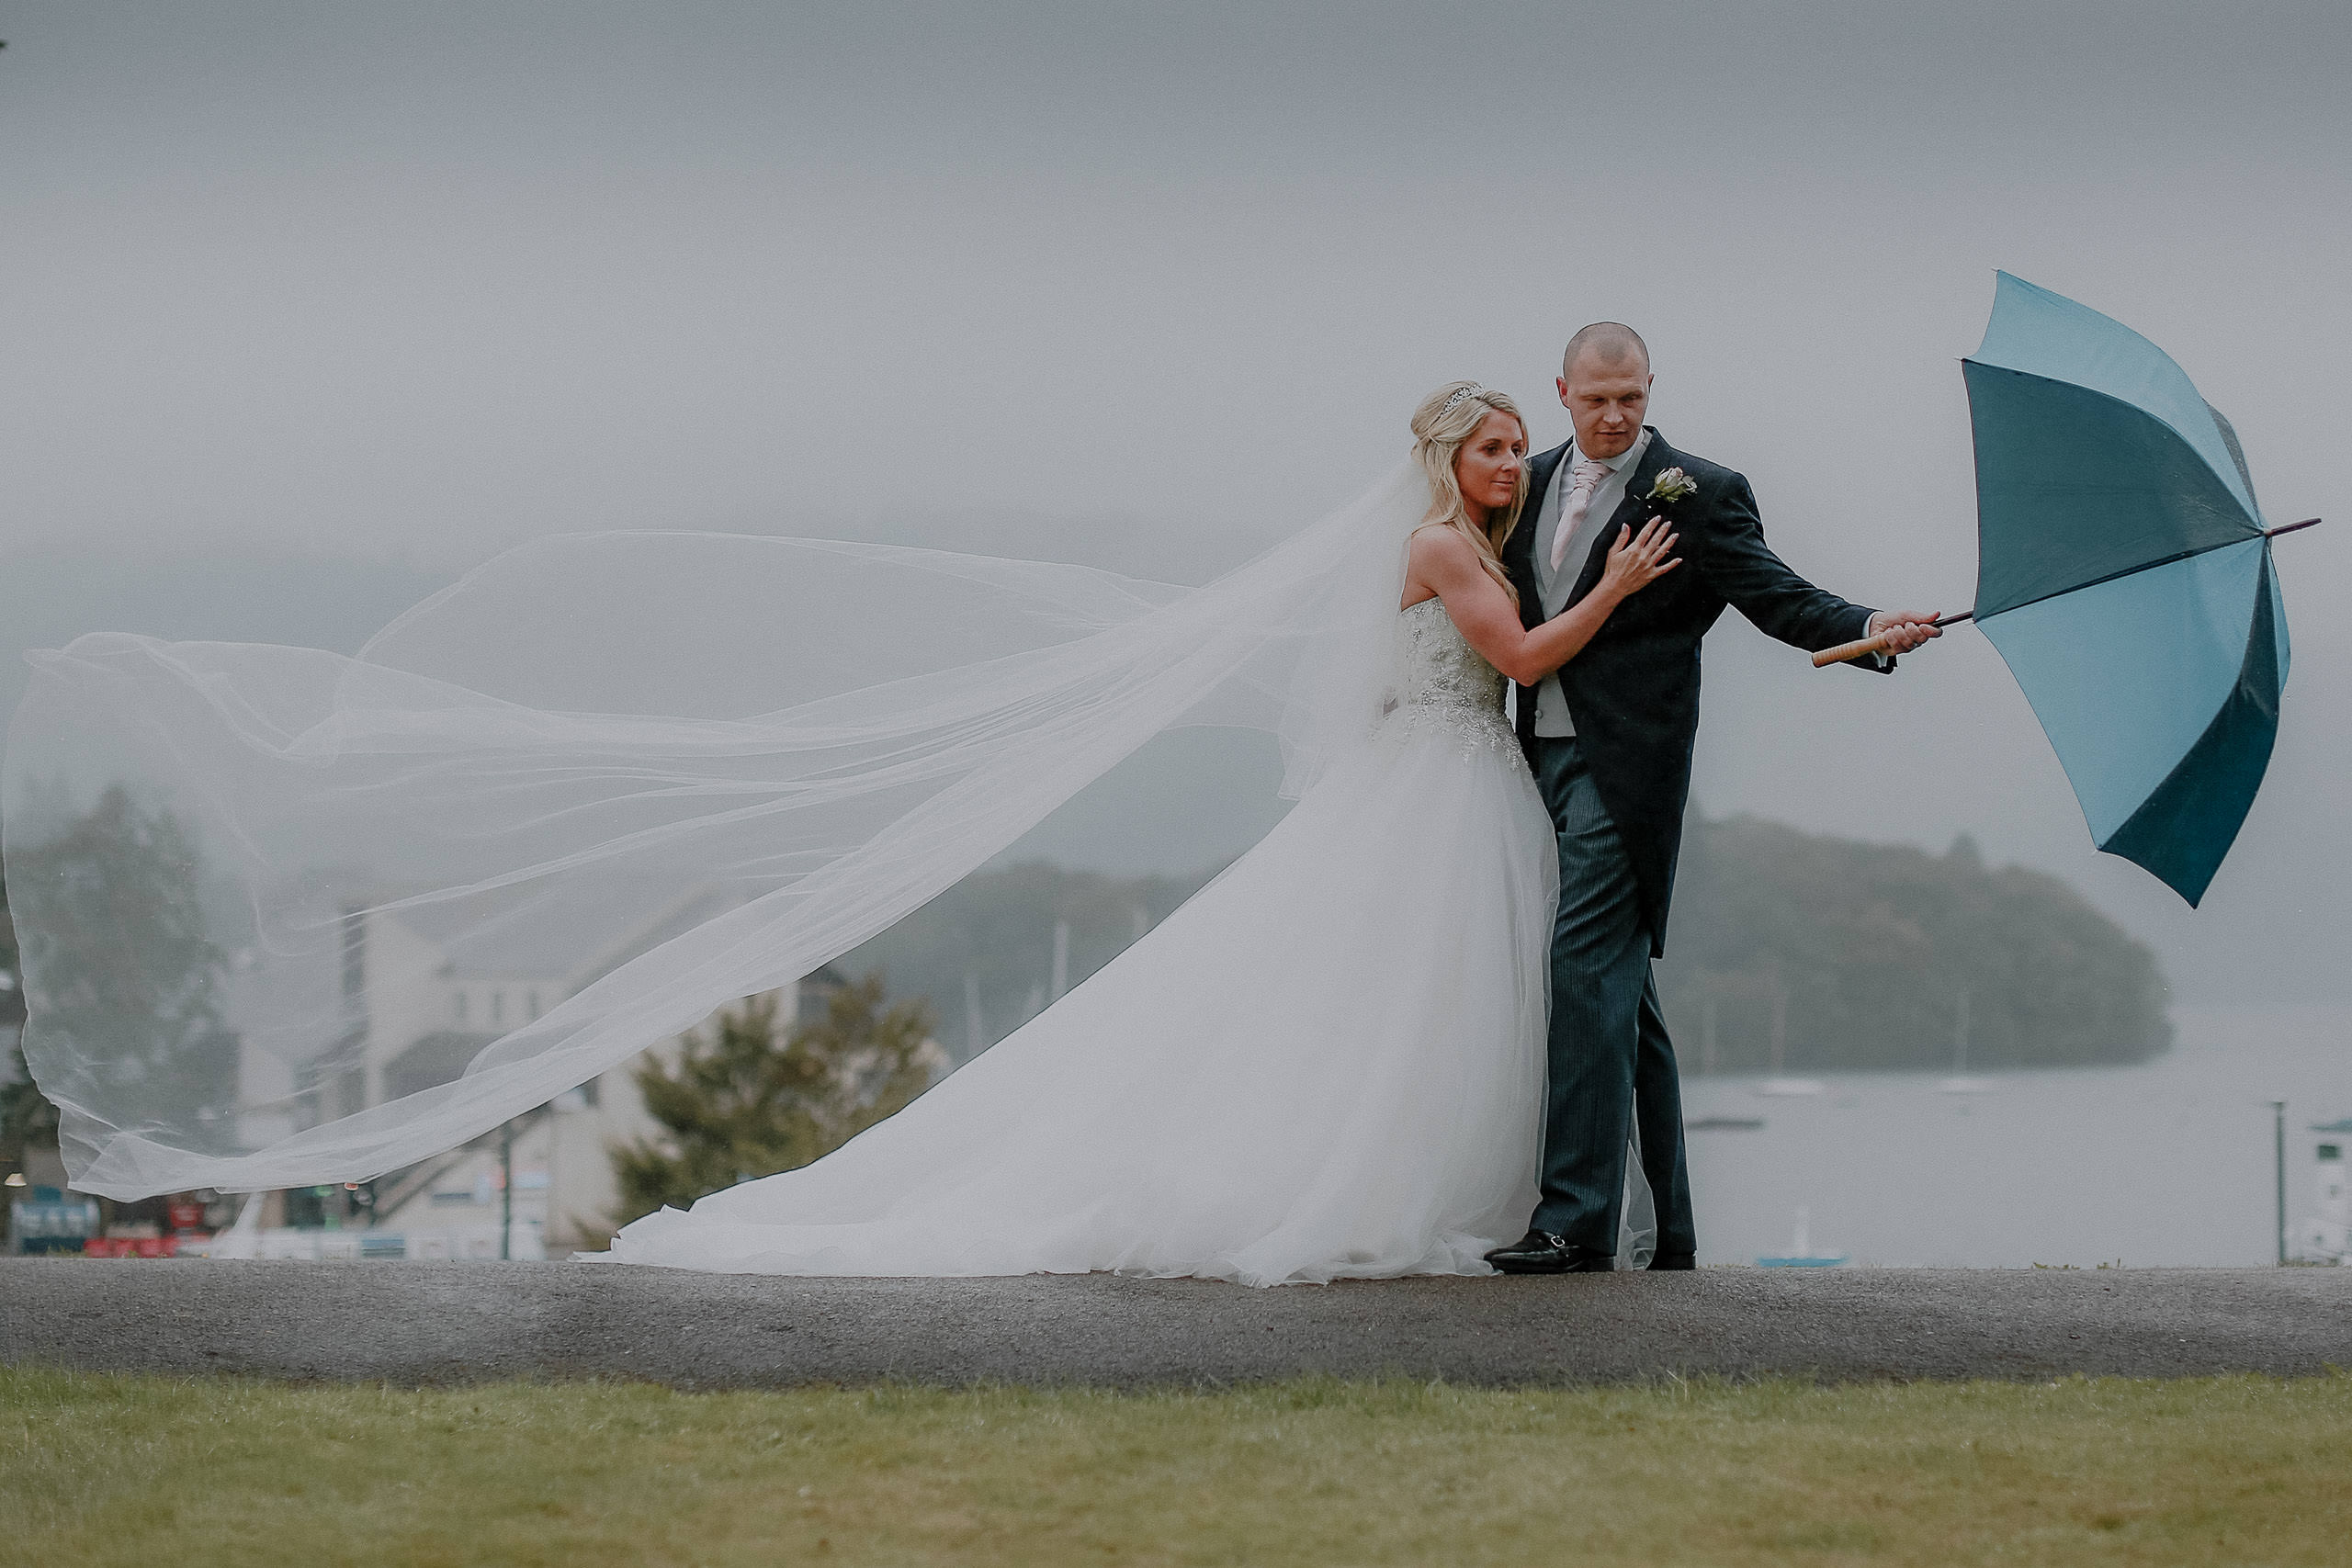 Bride and groom in rain with umbrella at Lake Windermere from Laura Ashley hotel wedding